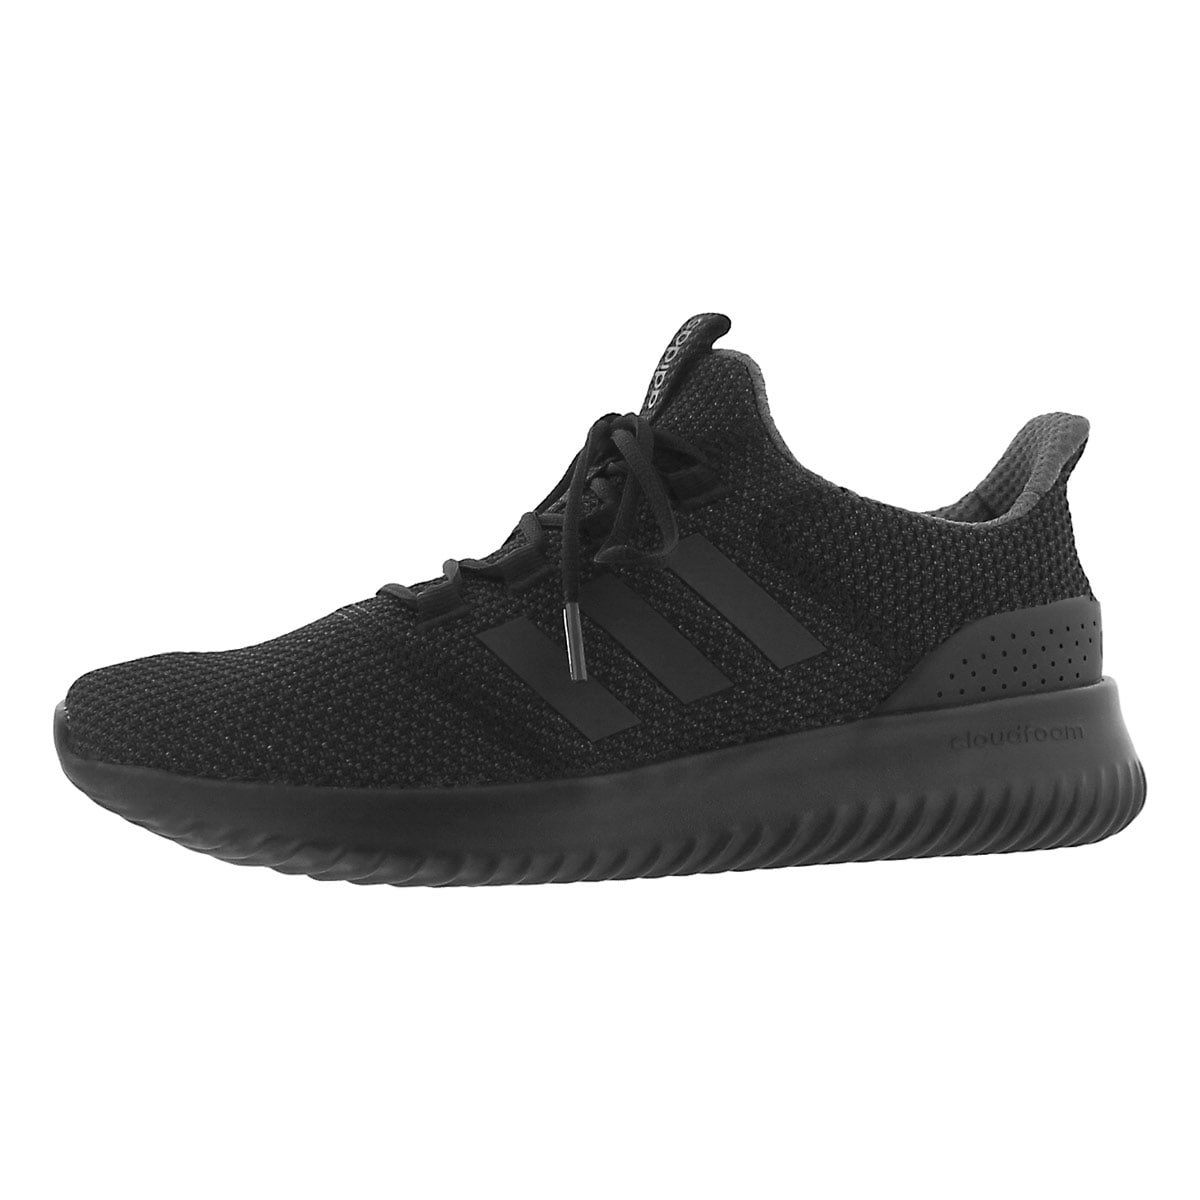 adidas Men's Cloudfoam Ultimate Running Shoe, Black/Black/Utility Black, 11 M US